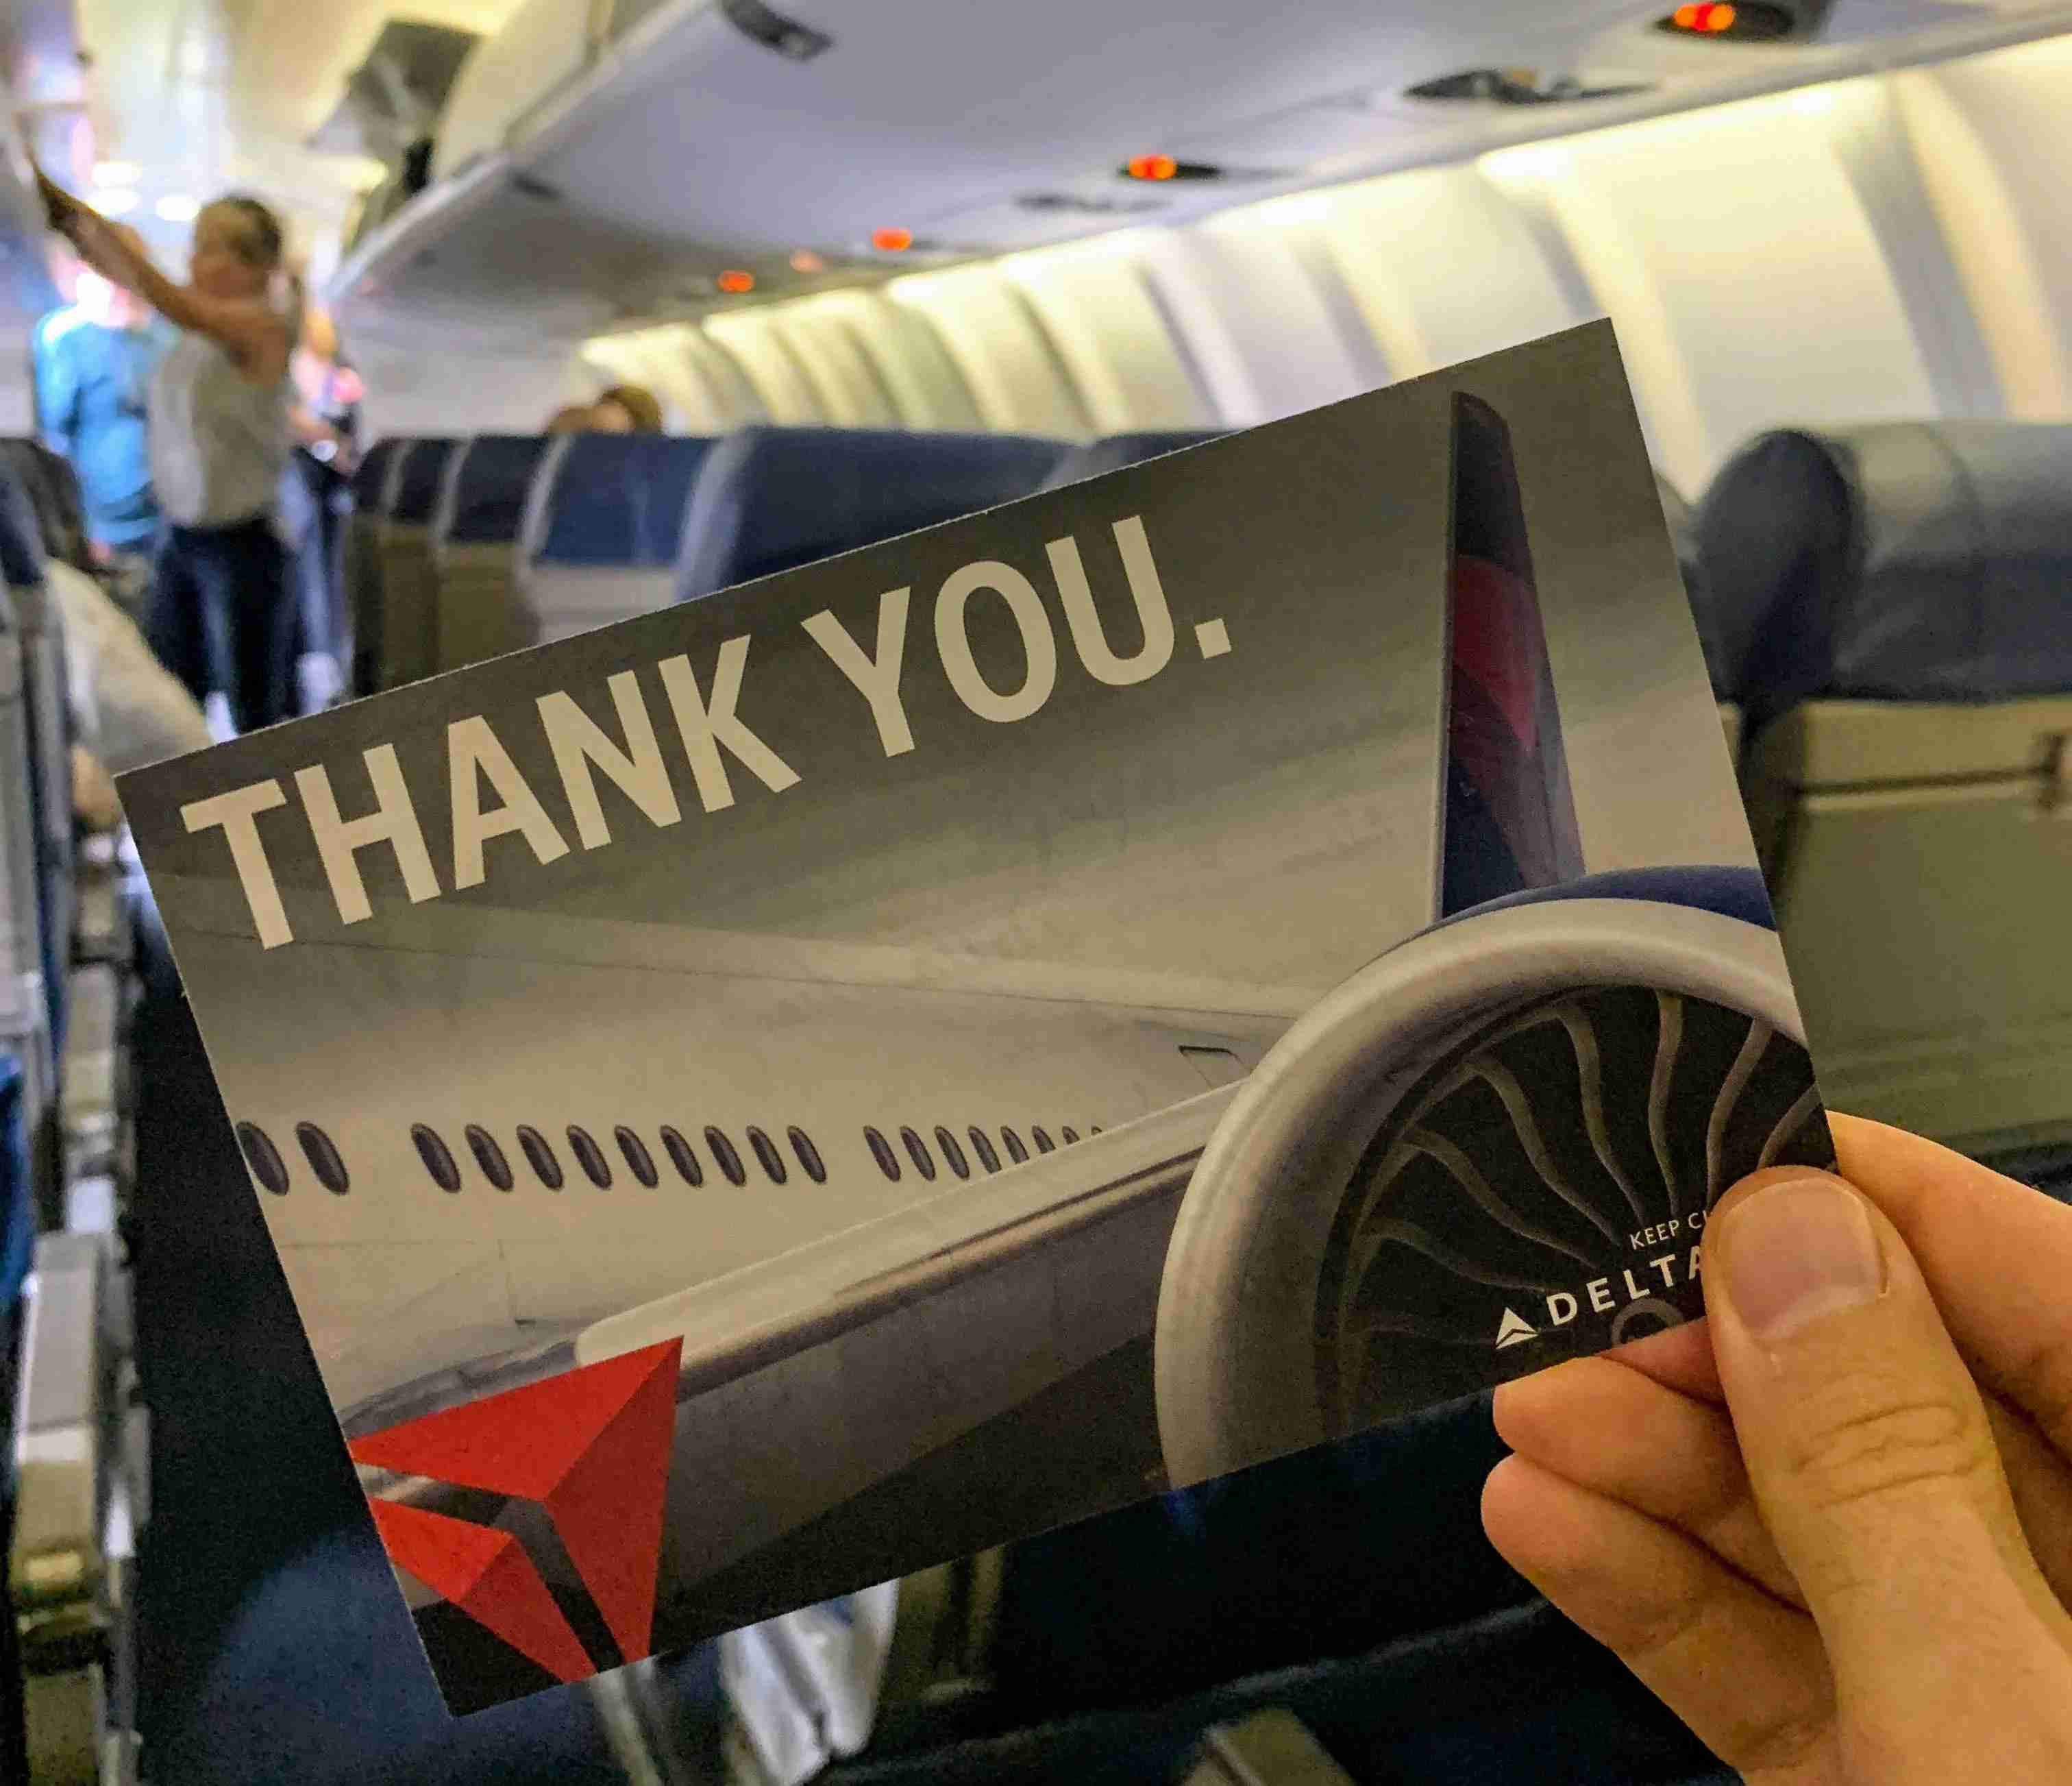 Every so often, top-tier Delta elites will get a hand-written note as they board